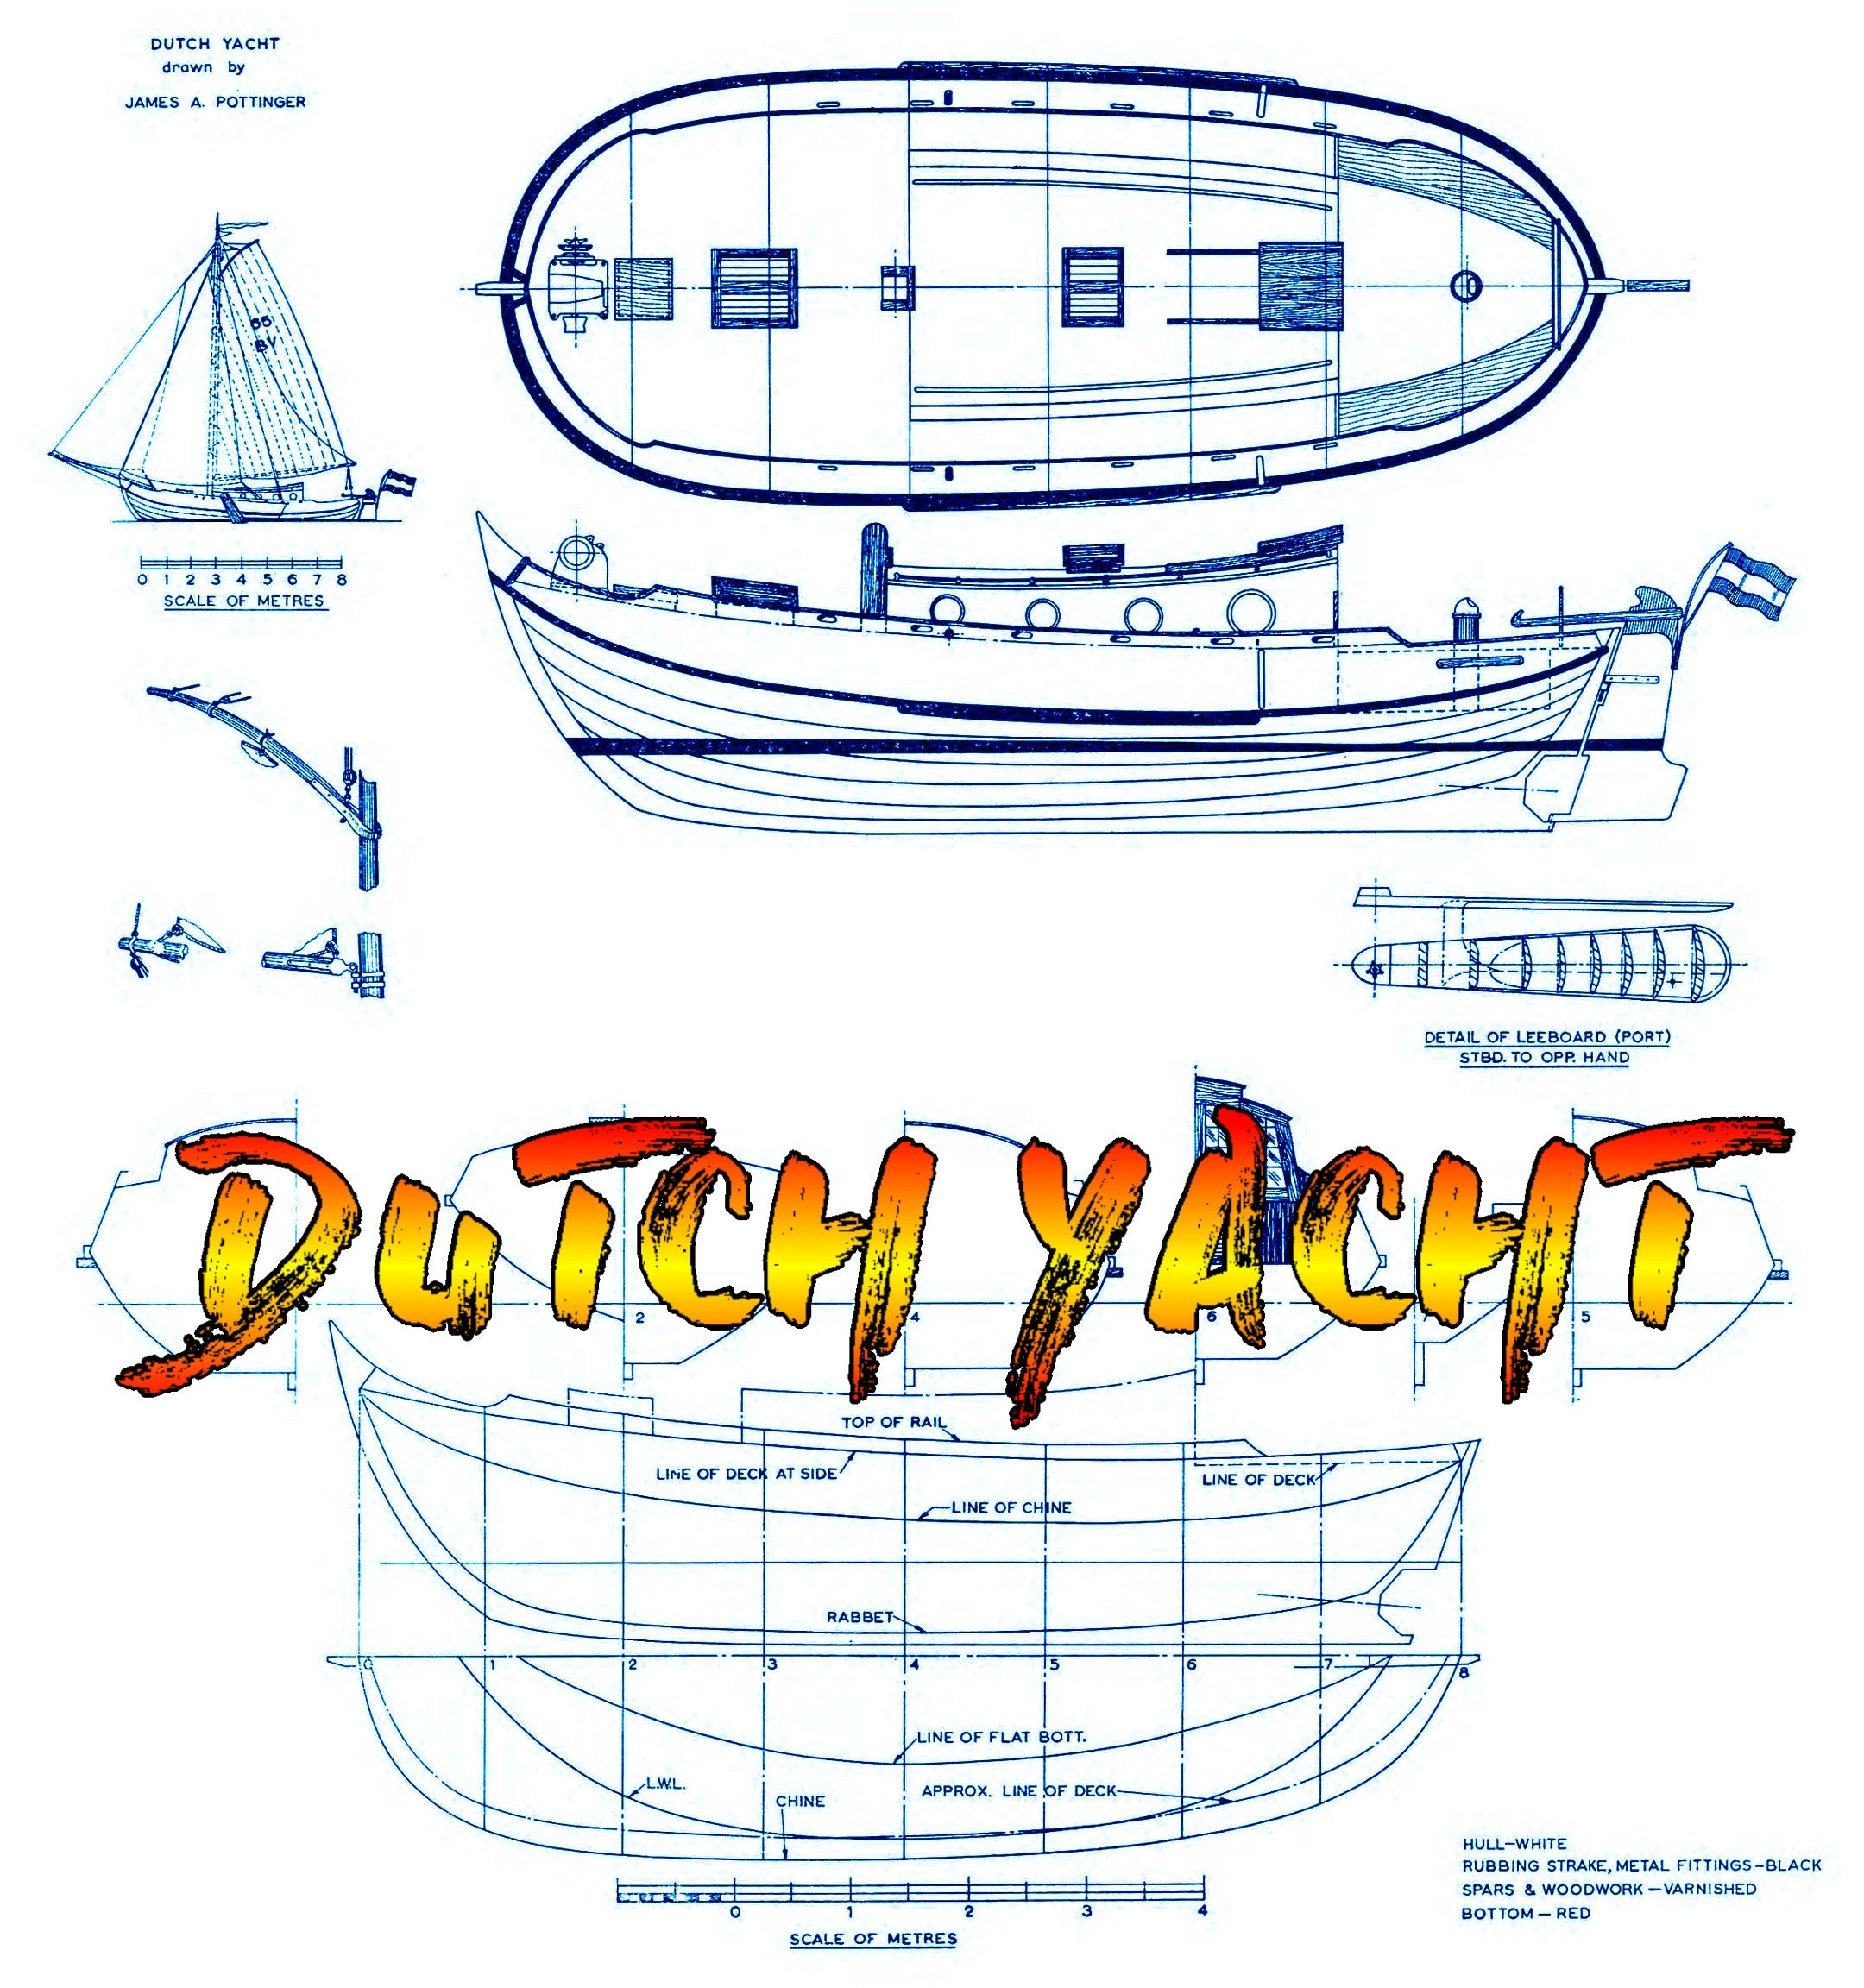 Full Size Printed Plan  Semi-Scale 1:21 DUTCH YACHT Pwr Electric and Sail  Suitable for Radio Control